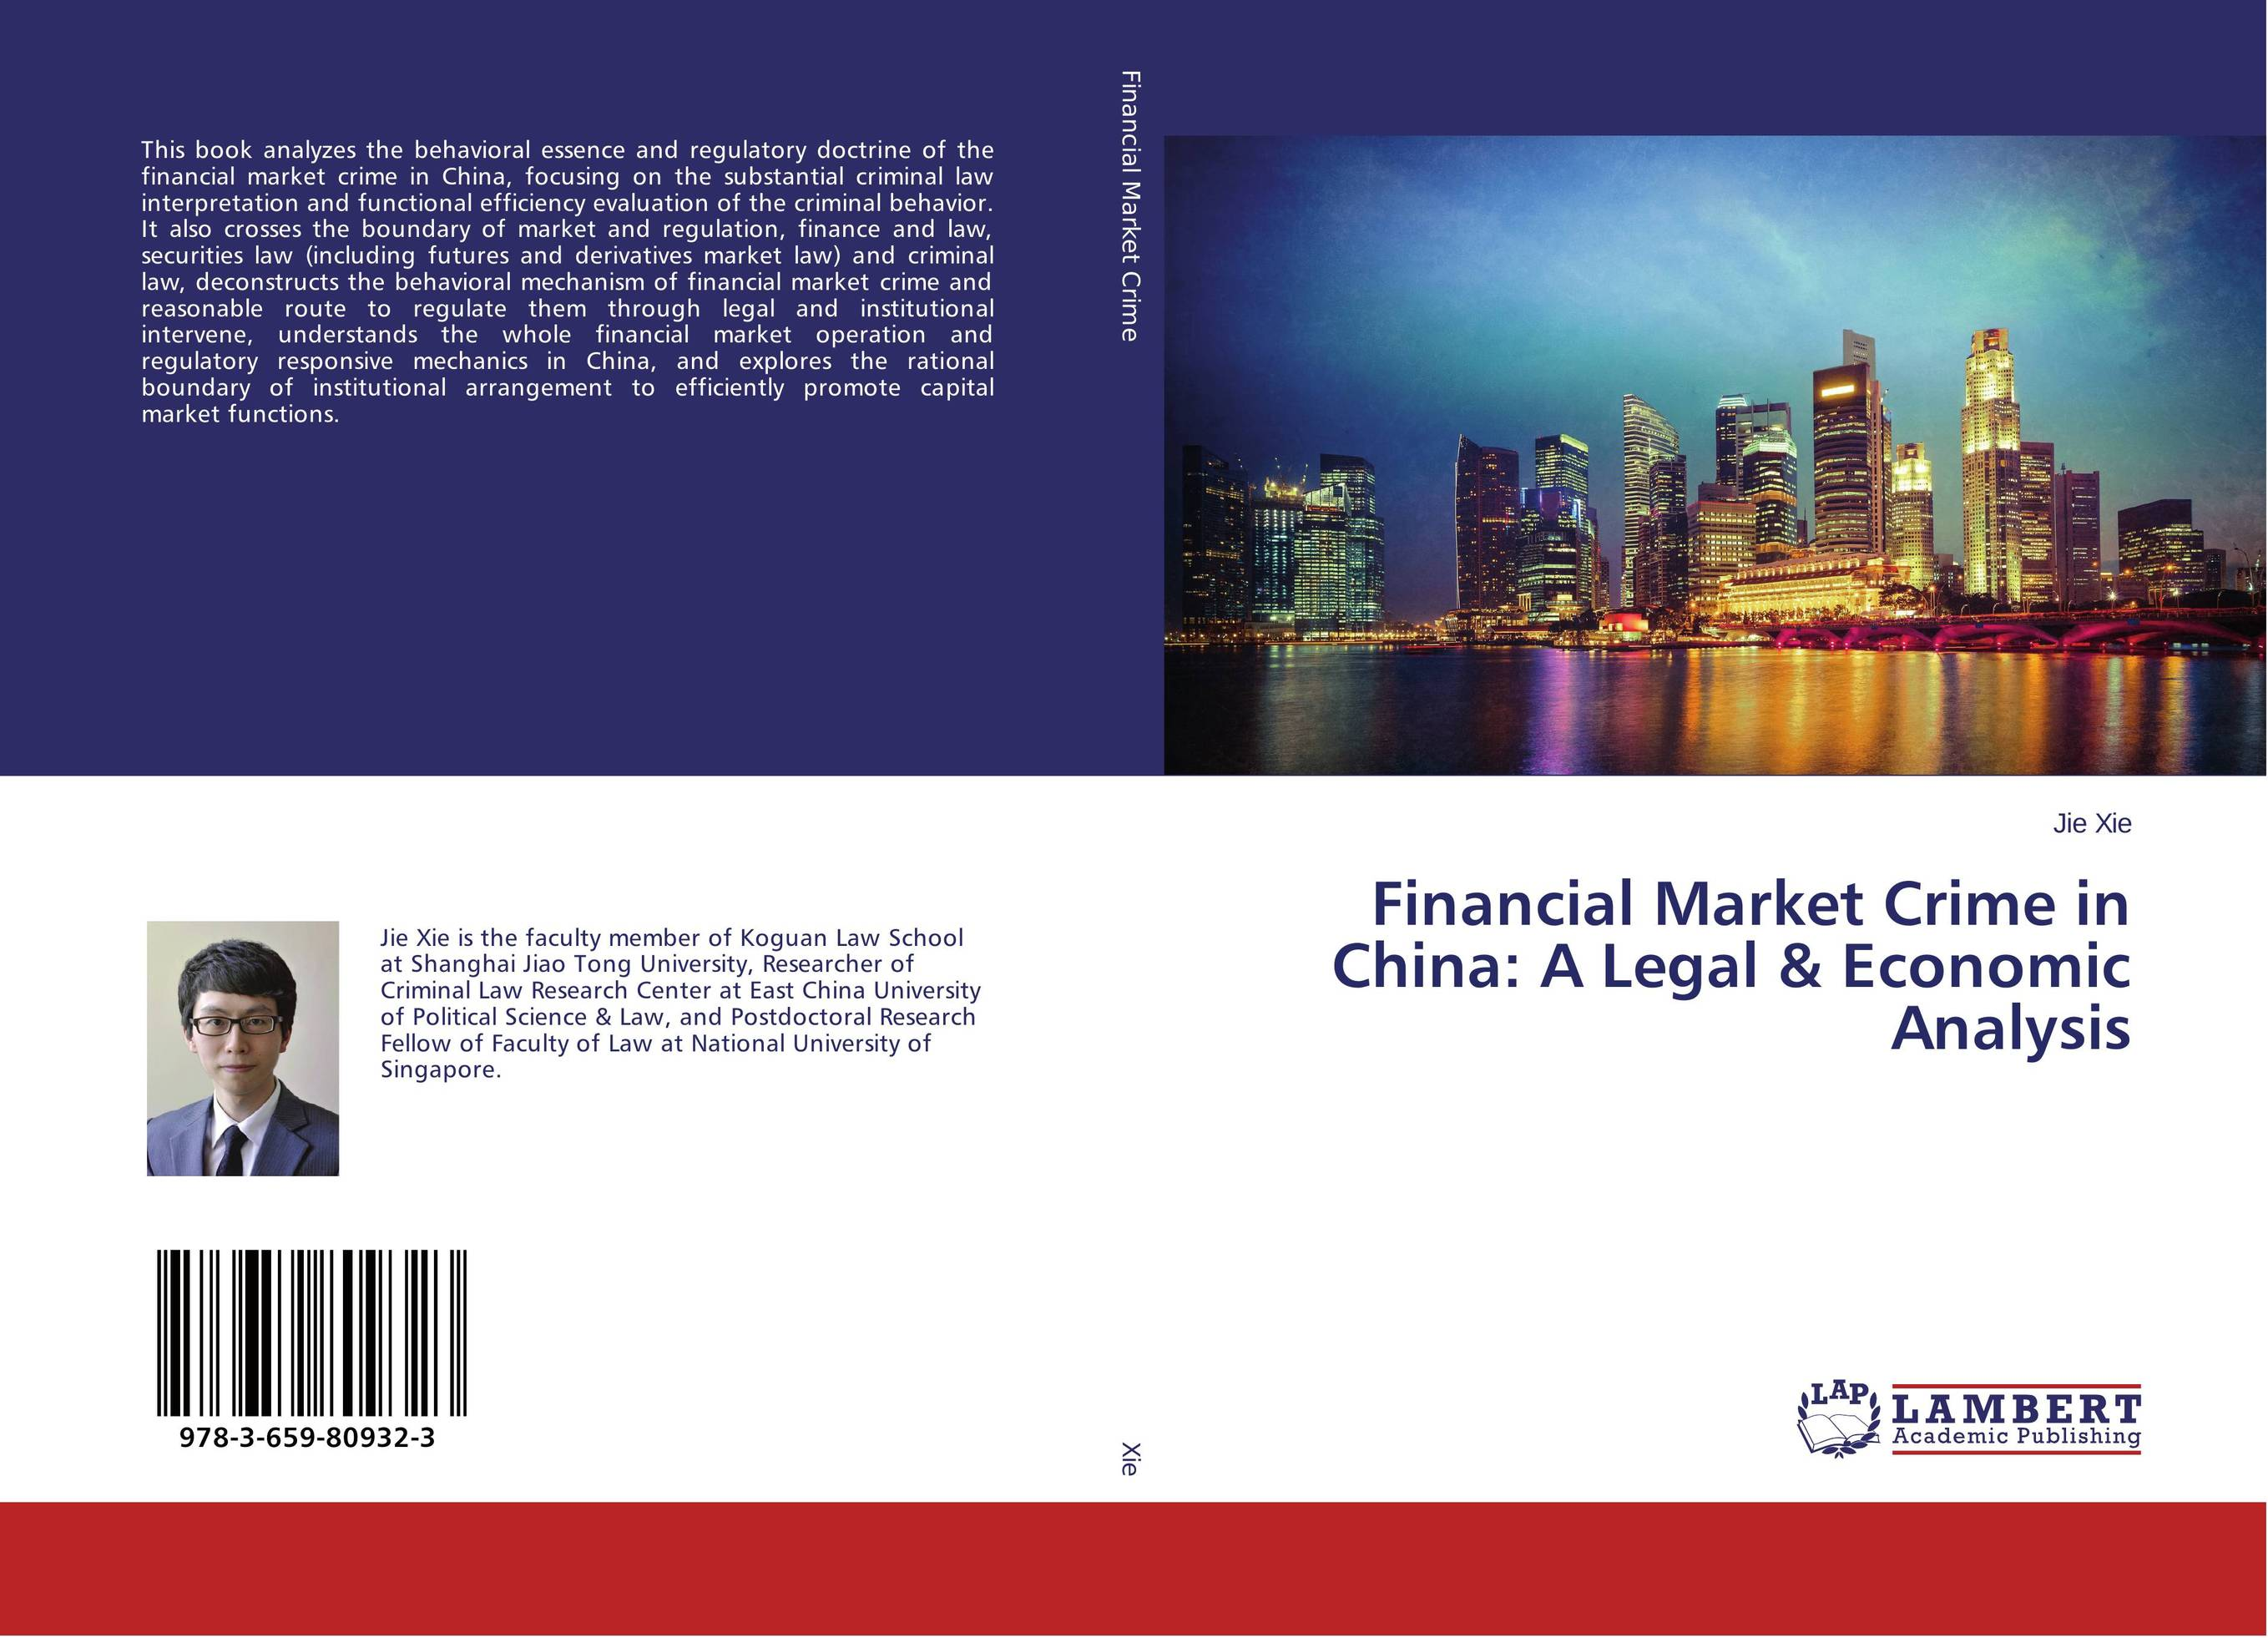 Financial Market Crime in China: A Legal & Economic Analysis